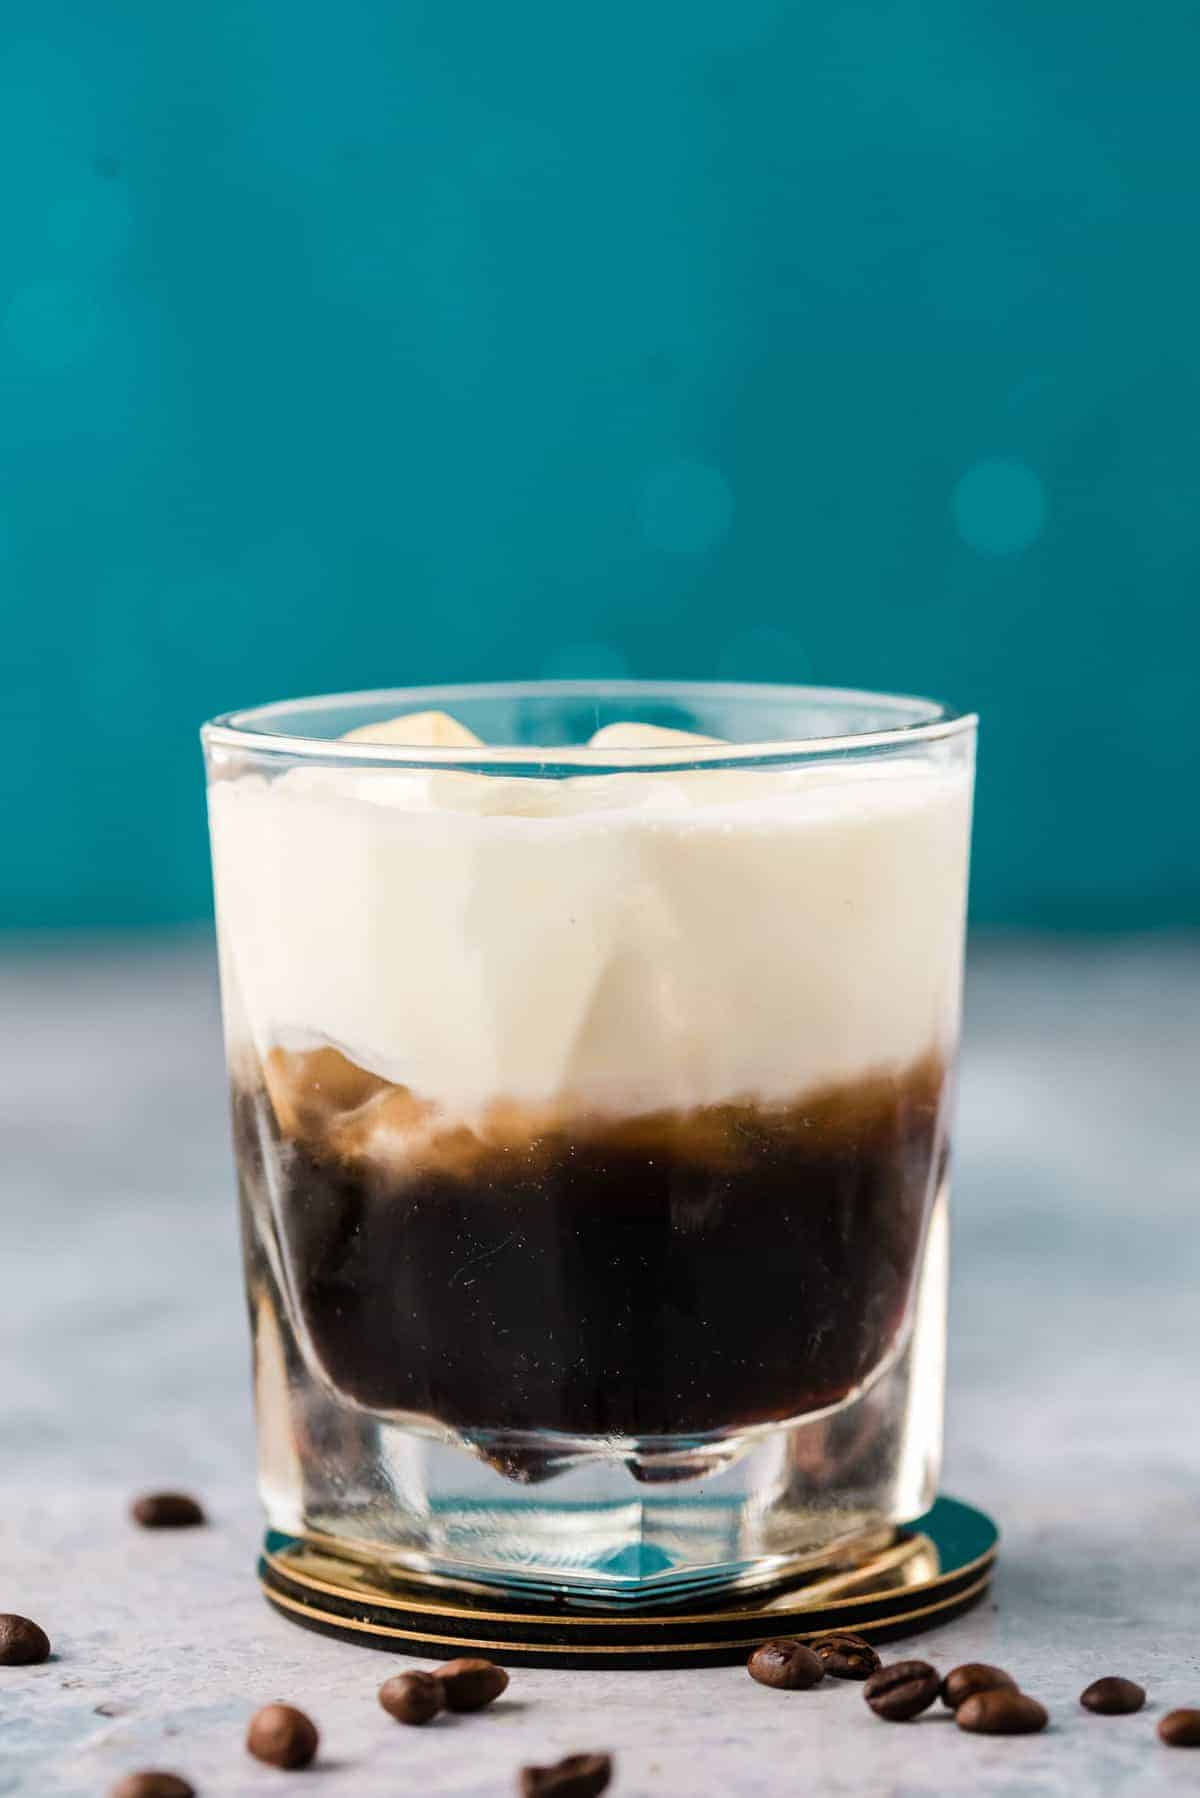 Beautiful layered dark brown and white drink against a blue background.